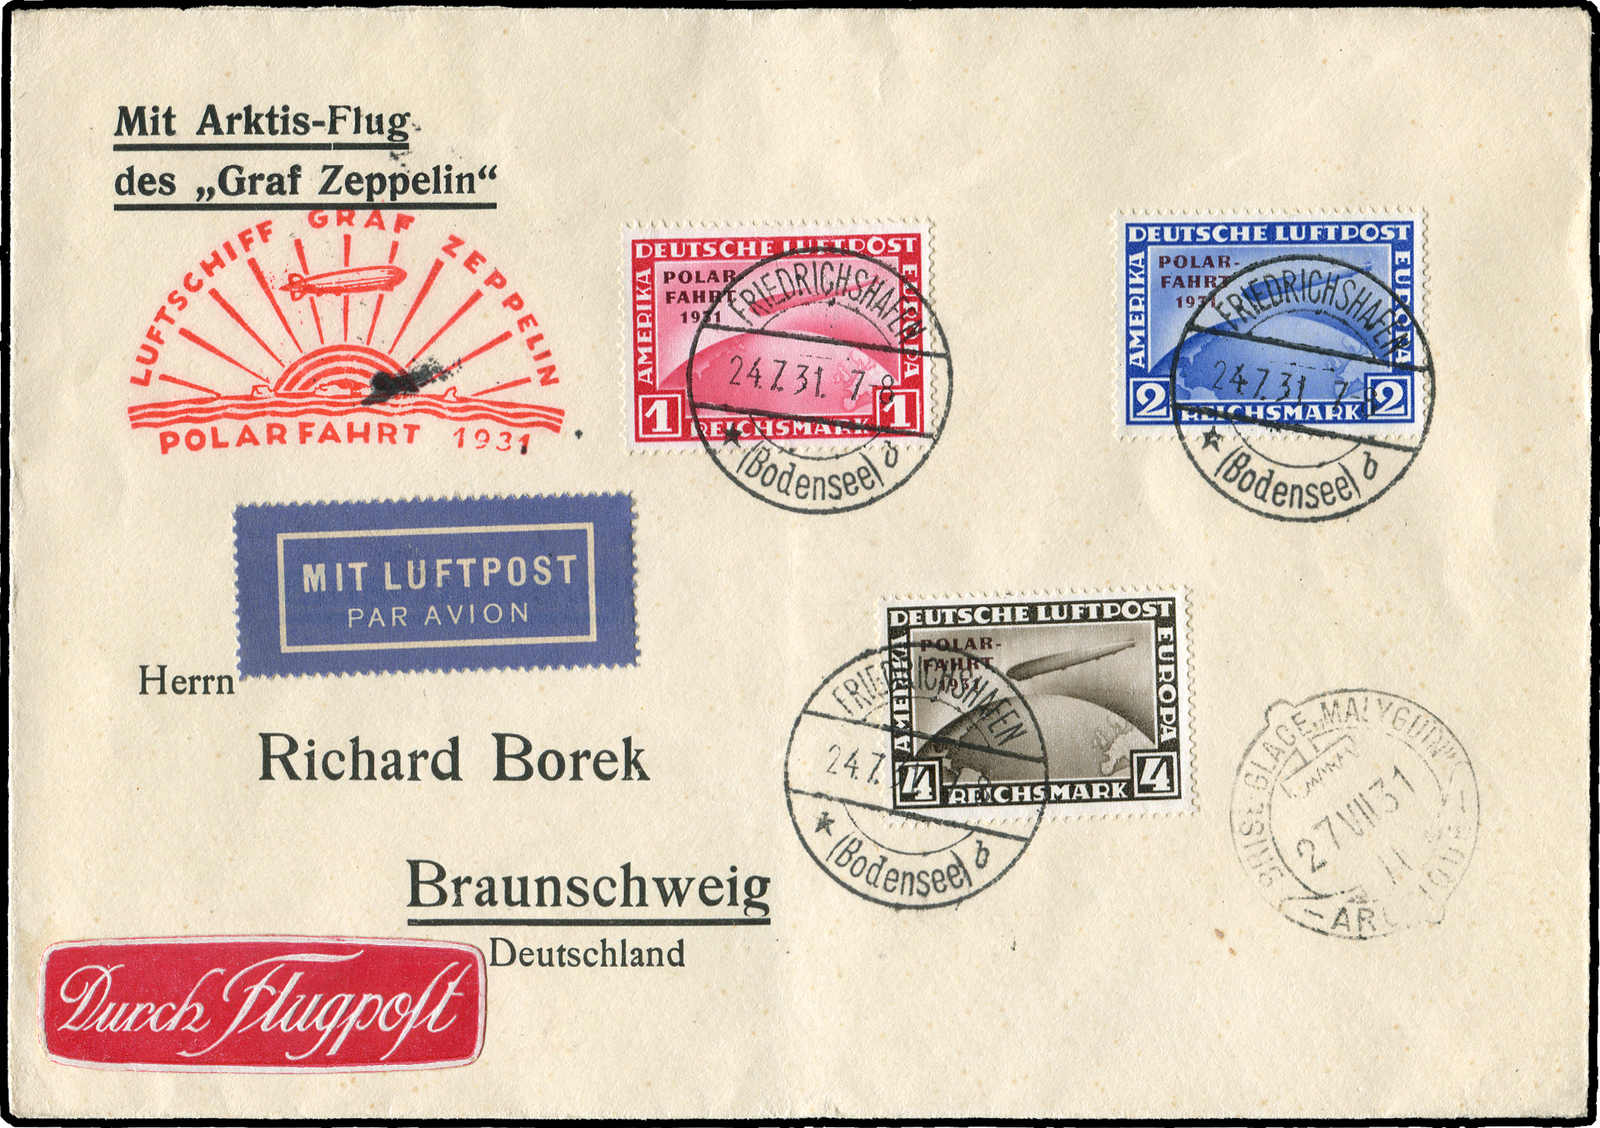 Lot 5907 - Deutsches Reich Deutsches Reich -  Auktionshaus Schlegel 26 Public Auction